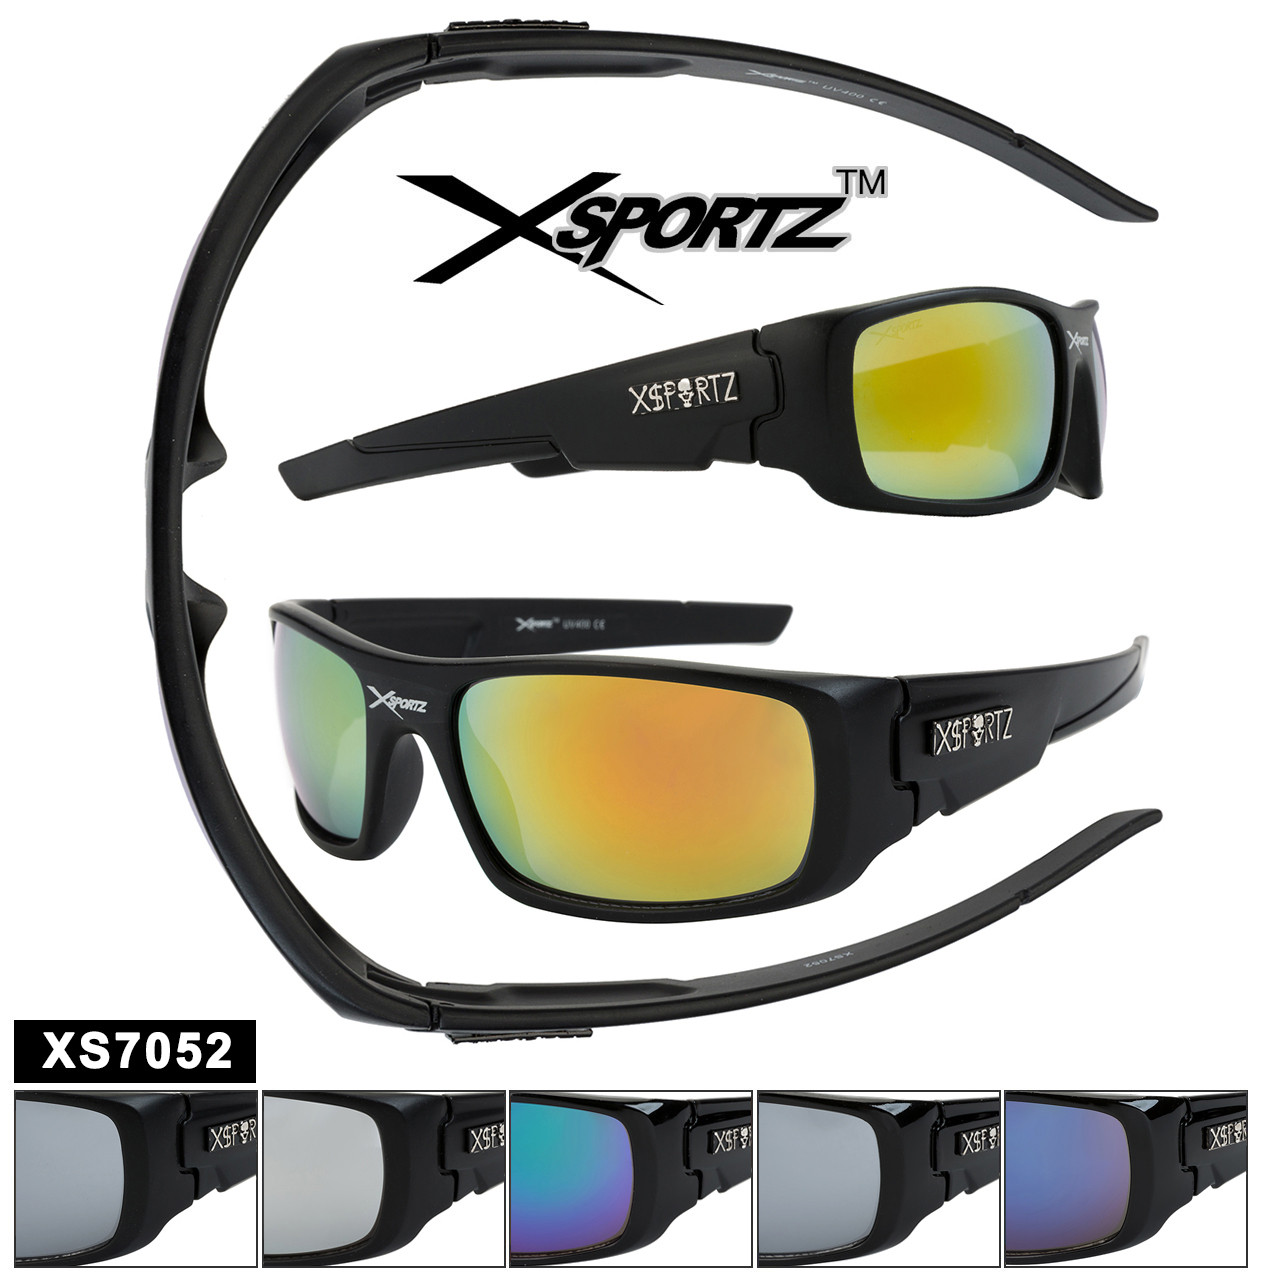 Sports Sunglasses in Bulk - Style XS7052